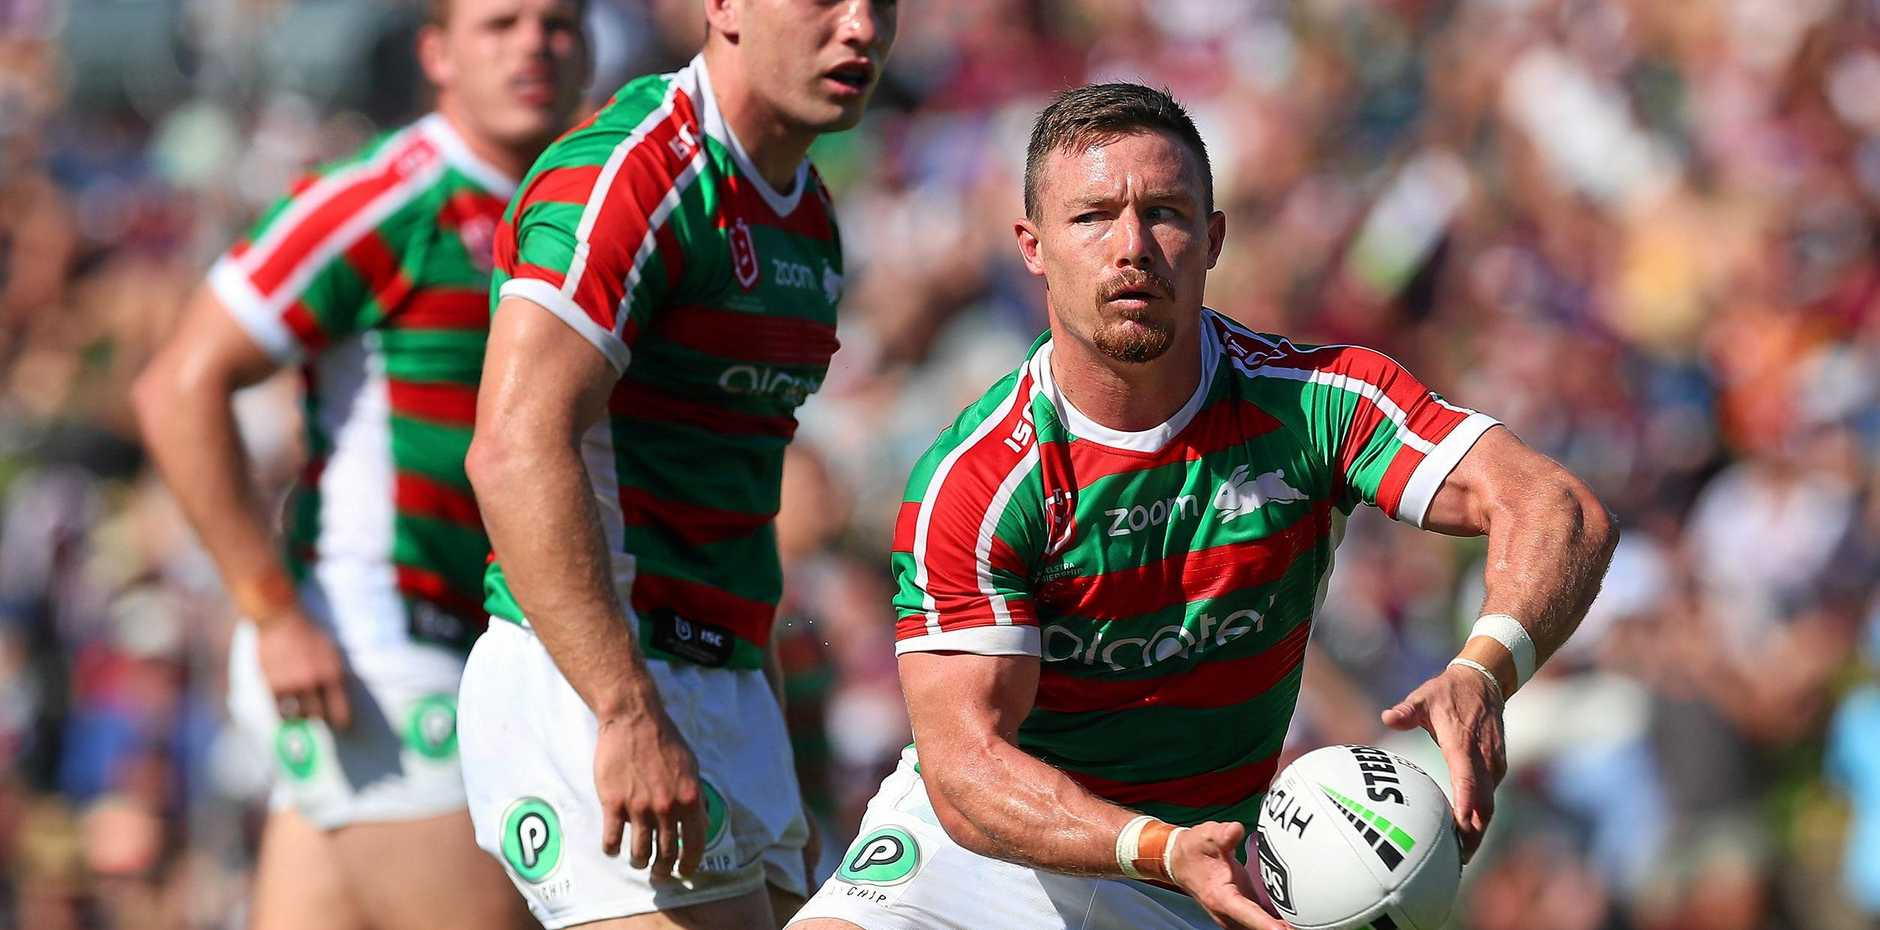 IN ACTION: Damien Cook of the Rabbitohs against Manly Sea Eagles at Lottoland on Sunday.